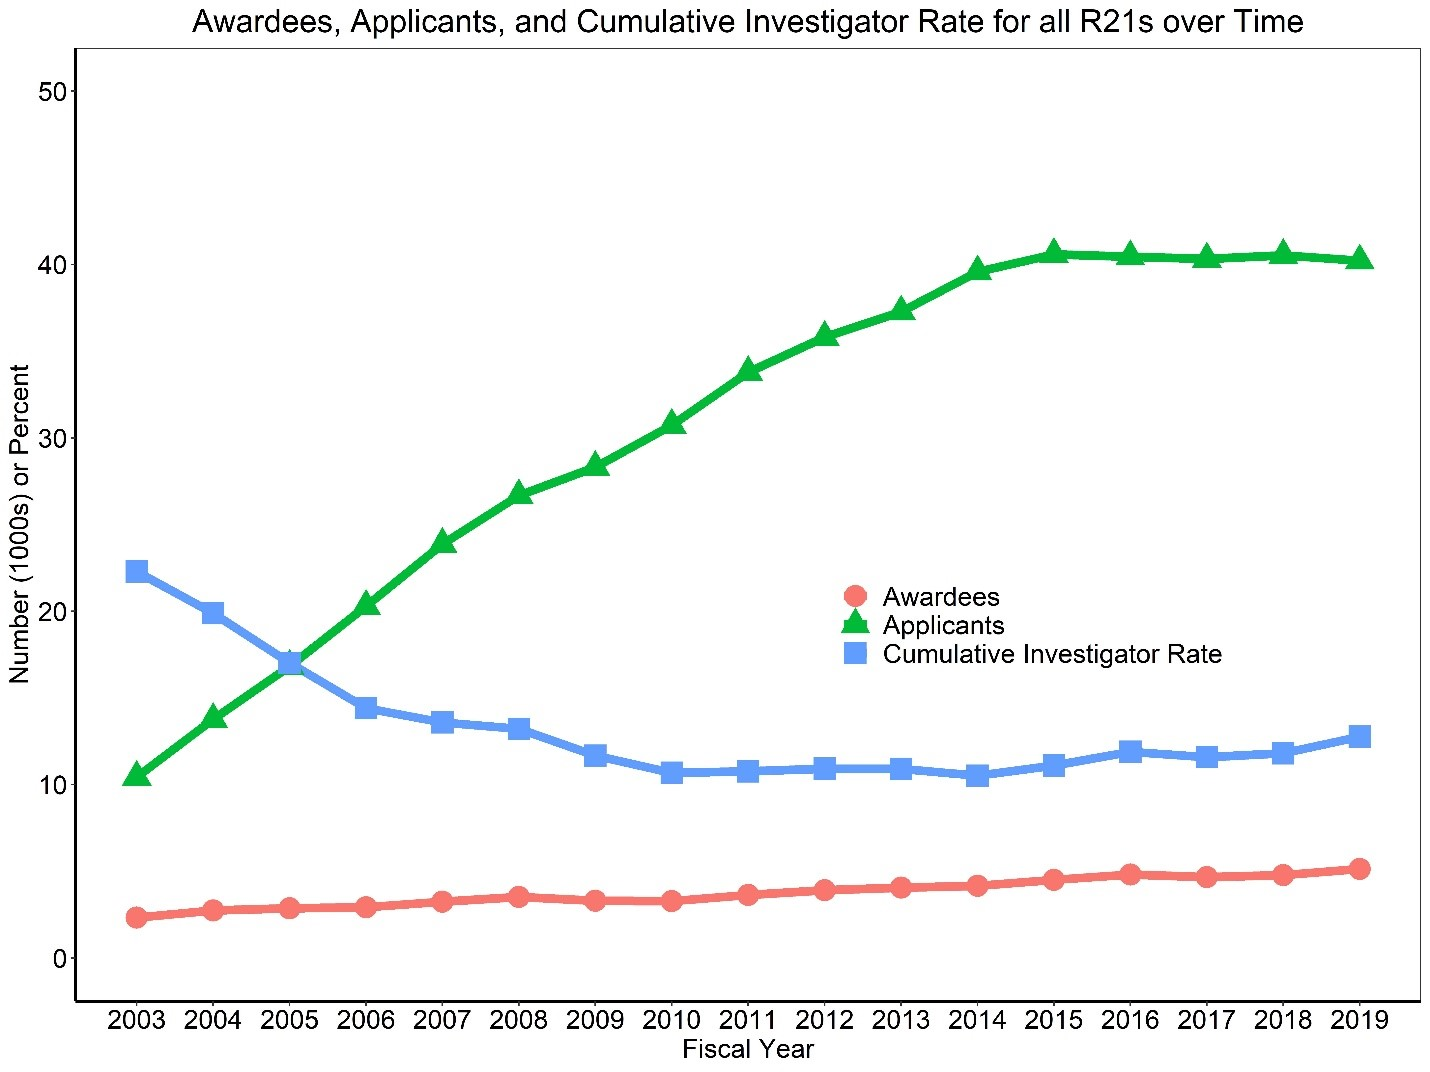 Figure 4 shows a line graph with applicants, awardees, and the Cumulative Investigator Rate for R21s over time. The X axis is fiscal years 2003 to 2019, while the Y axis is either the absolute number (in thousands) for applicants and awardees or a percent for the Cumulative Investigator Rate from 0 to 50. Awardees, applicants, and the Cumulative Investigator Rate are shown in separate red circle, green triangle, and blue square lines, respectively.